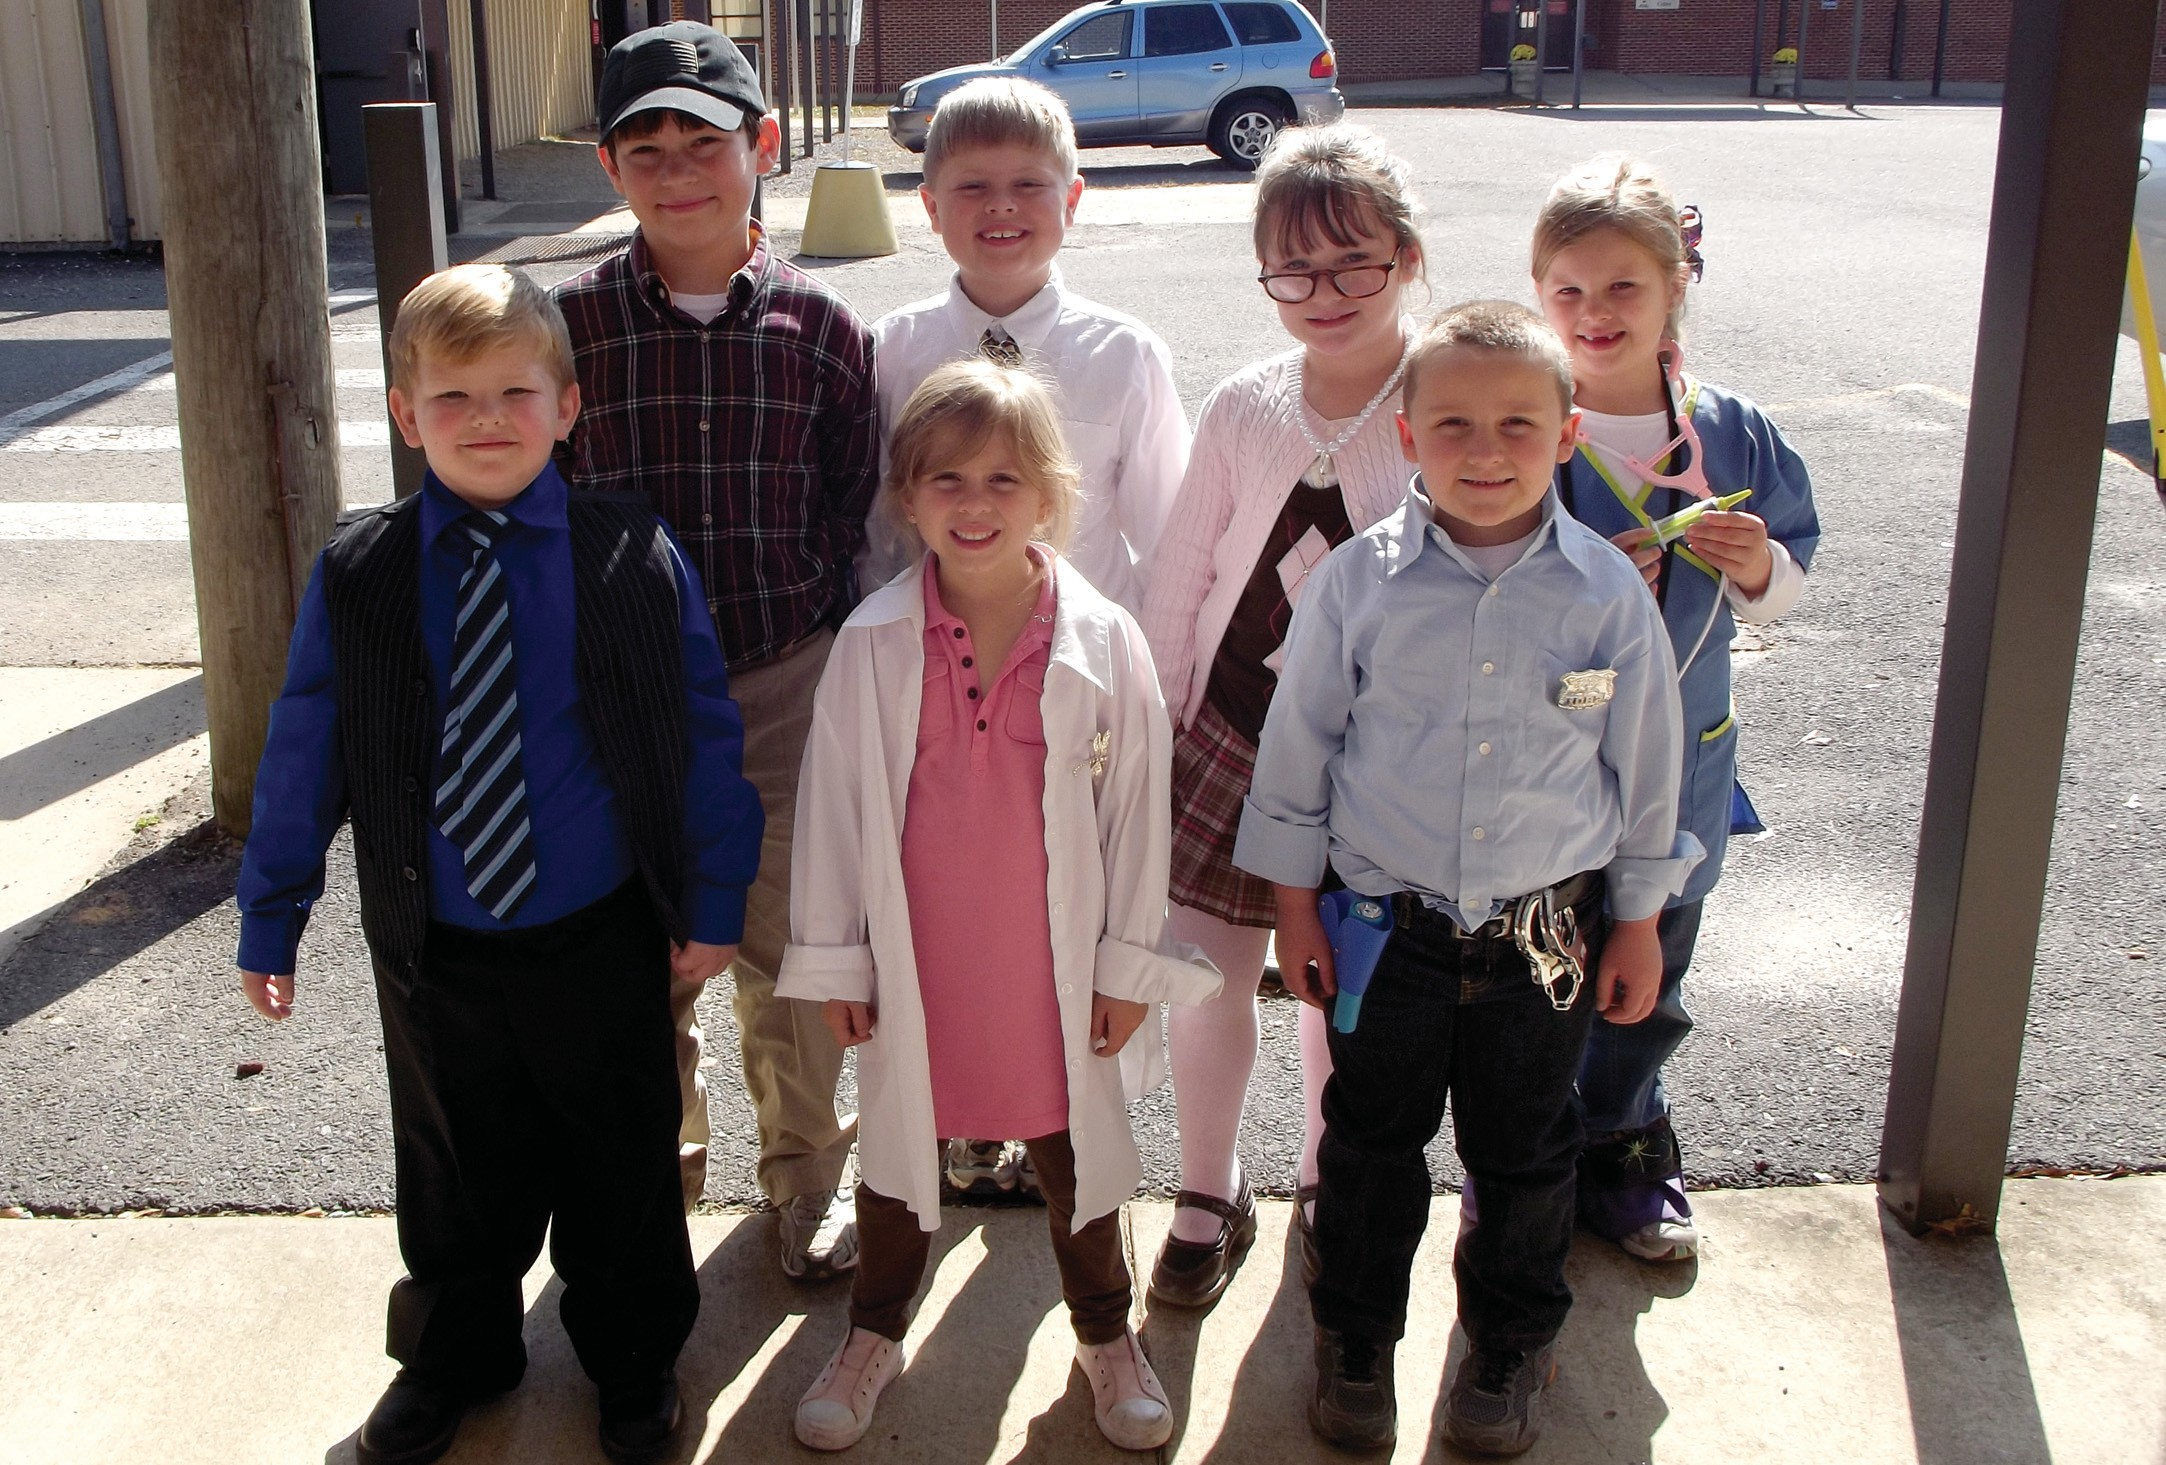 A bunch of heroes: (front row from left) Brandon Lee dresses as a principal; Allyne Darden as a dentist; Owen Thrasher, a police officer; (back row) Kyle Willis, a county road inspector; Owen Darden, a preacher; Allison Willis, a librarian, and McKinley Beavers, a veterinarian.